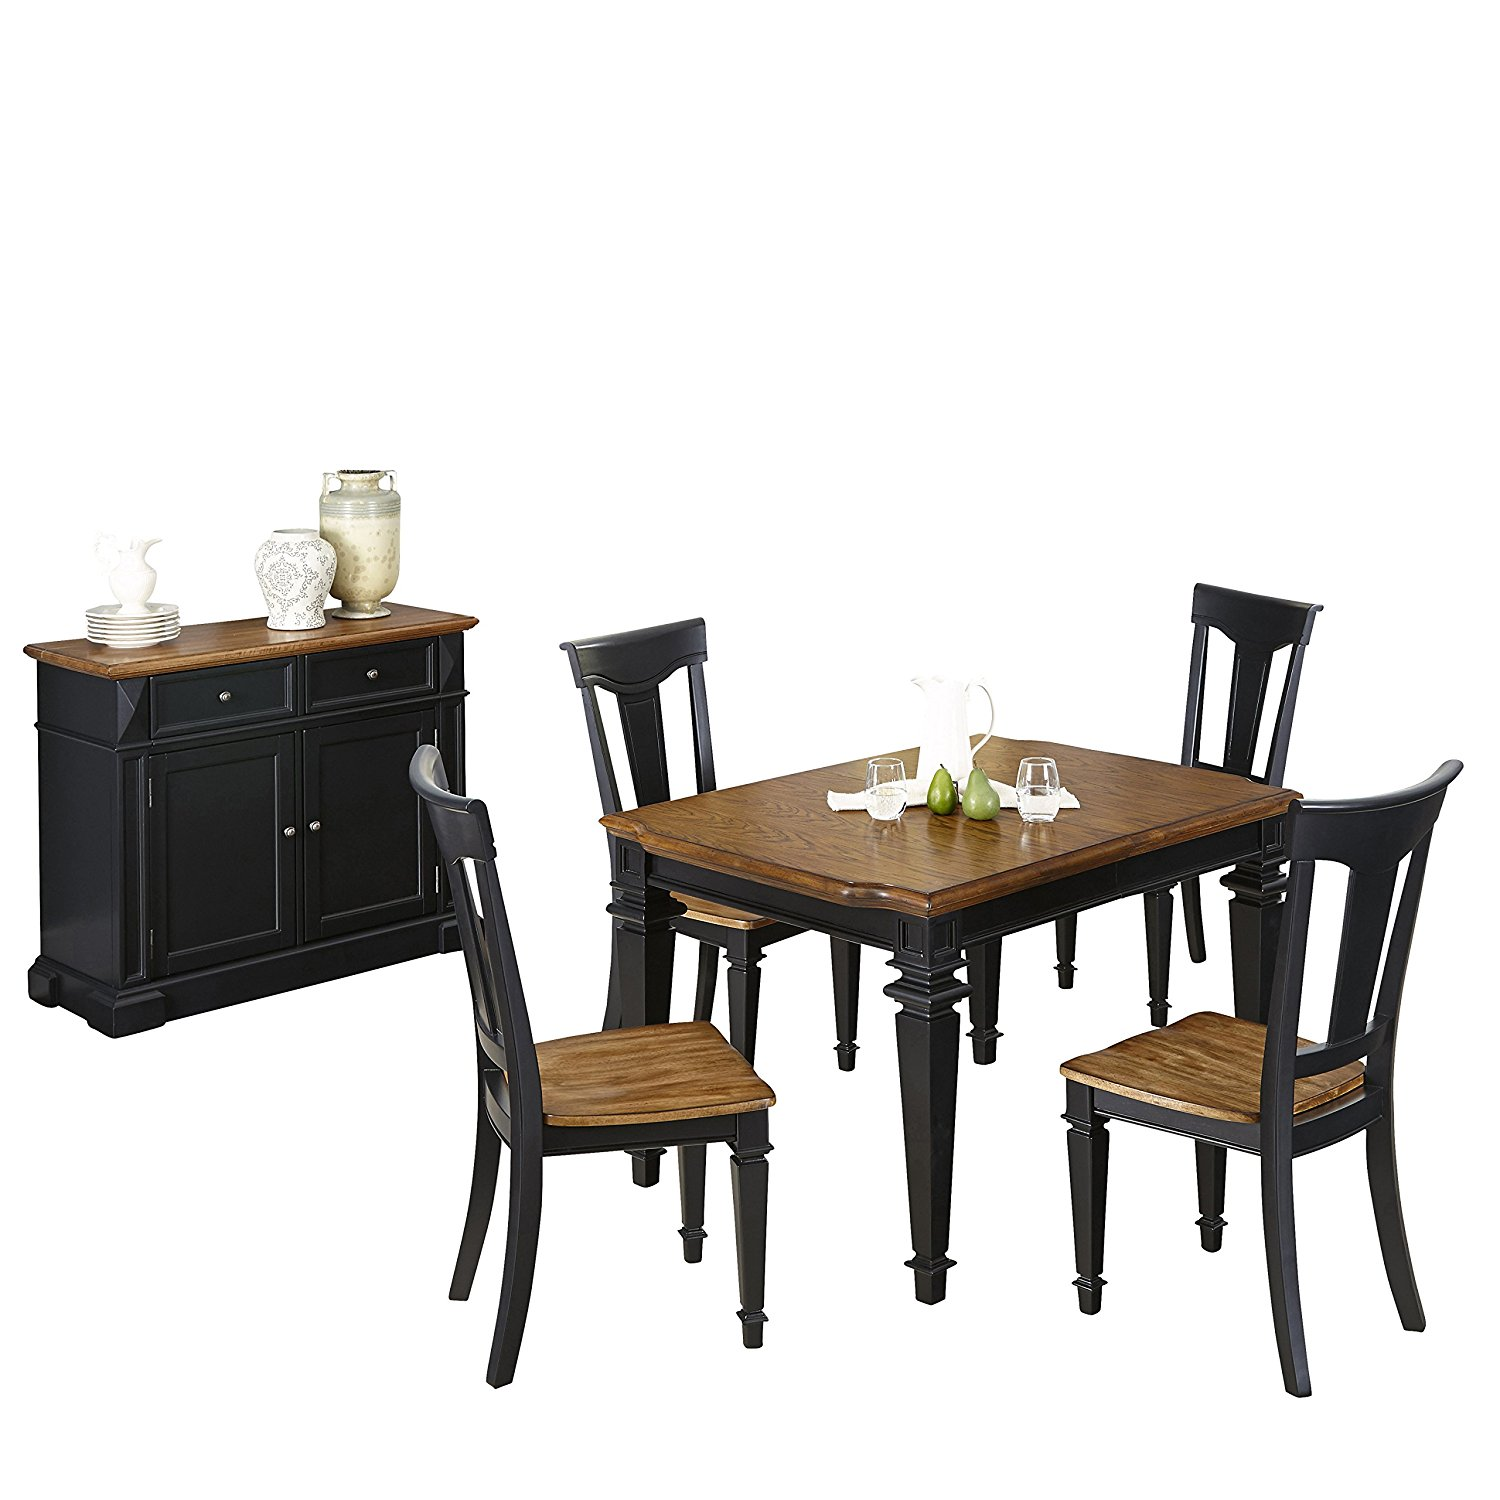 Charming Get Quotations · Home Styles 5003 3486 5 Piece Americana Dining Set With  Buffet, Black And